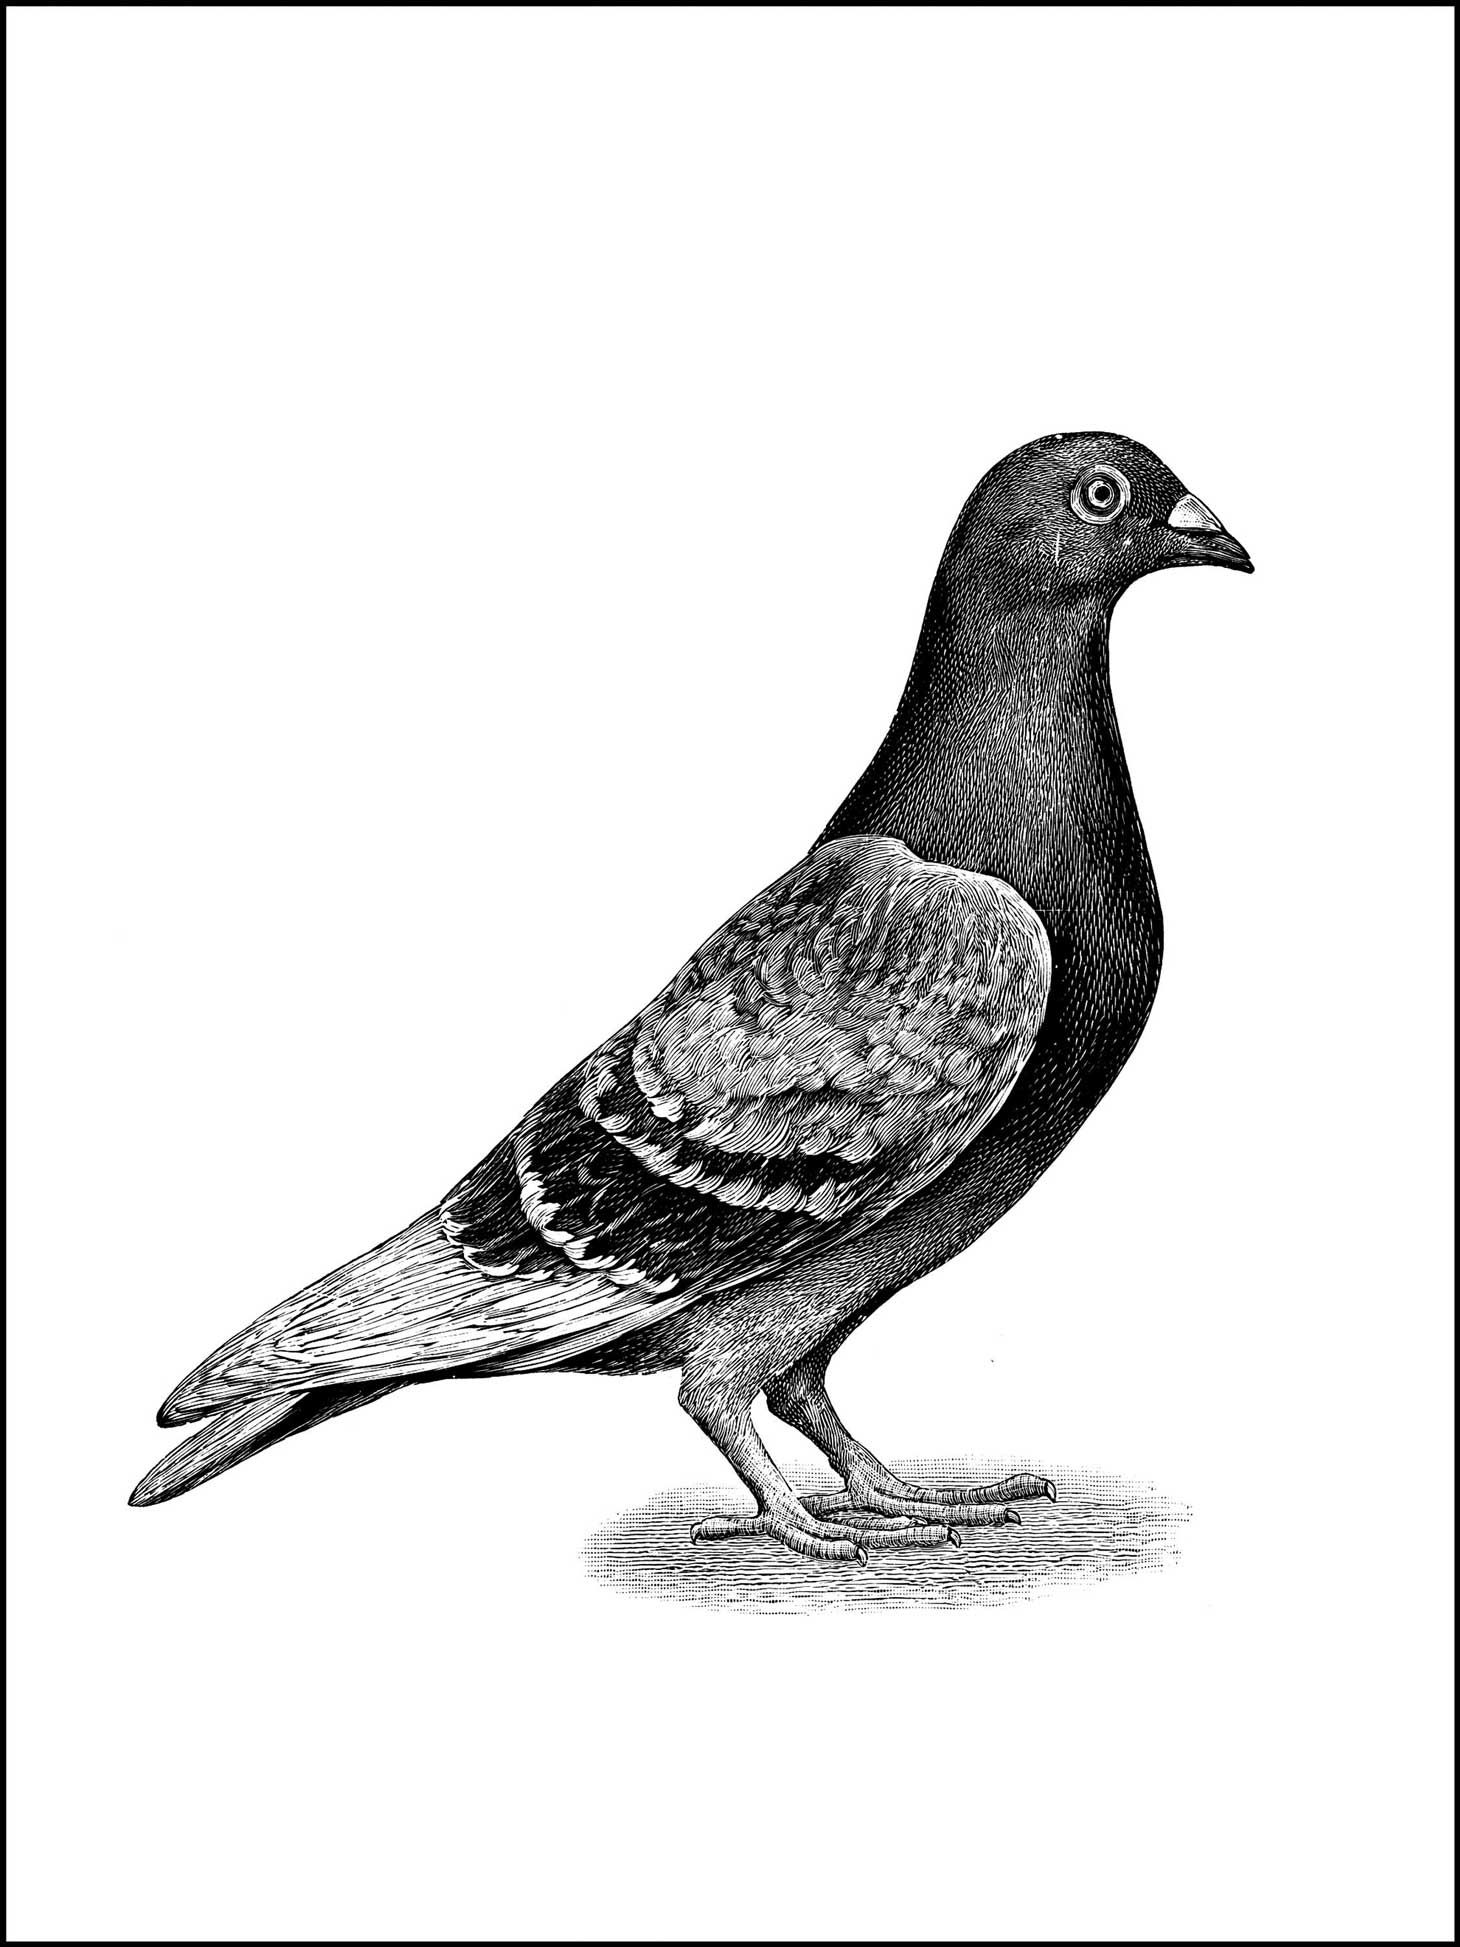 coloring pages - a pigeon, or bird to color in 2019 ...